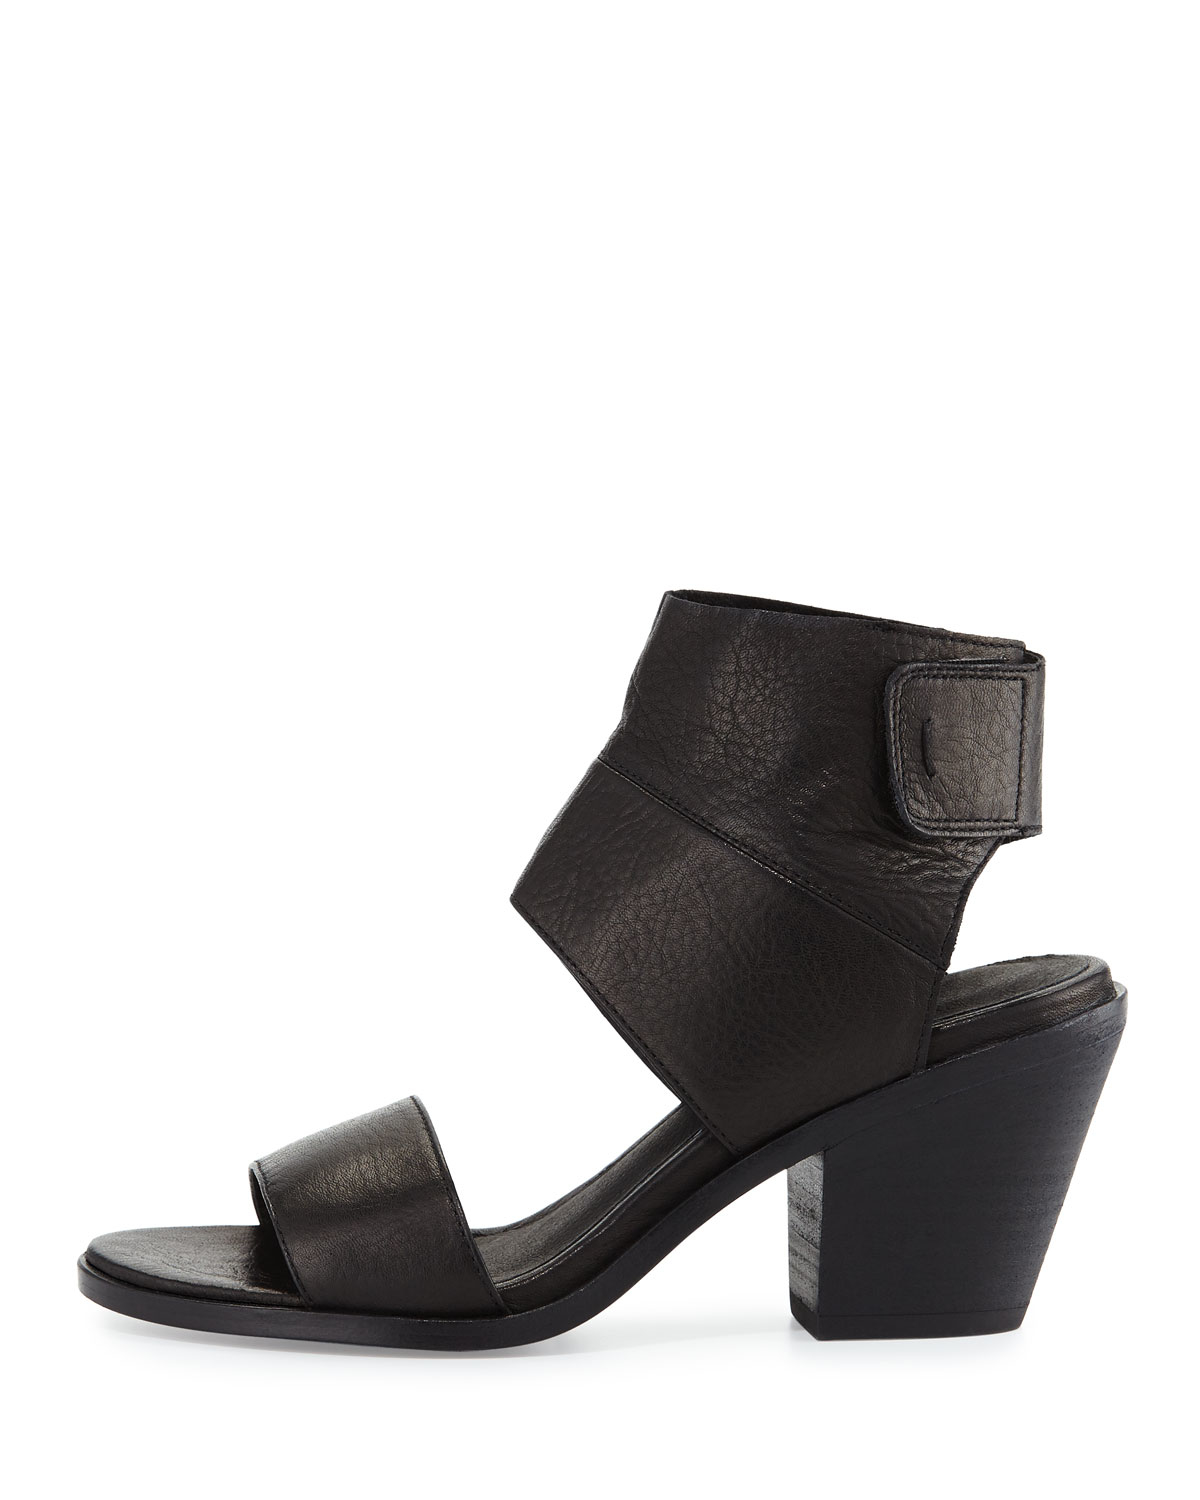 Eileen fisher Art Leather Ankle-cuff Sandal in Black | Lyst